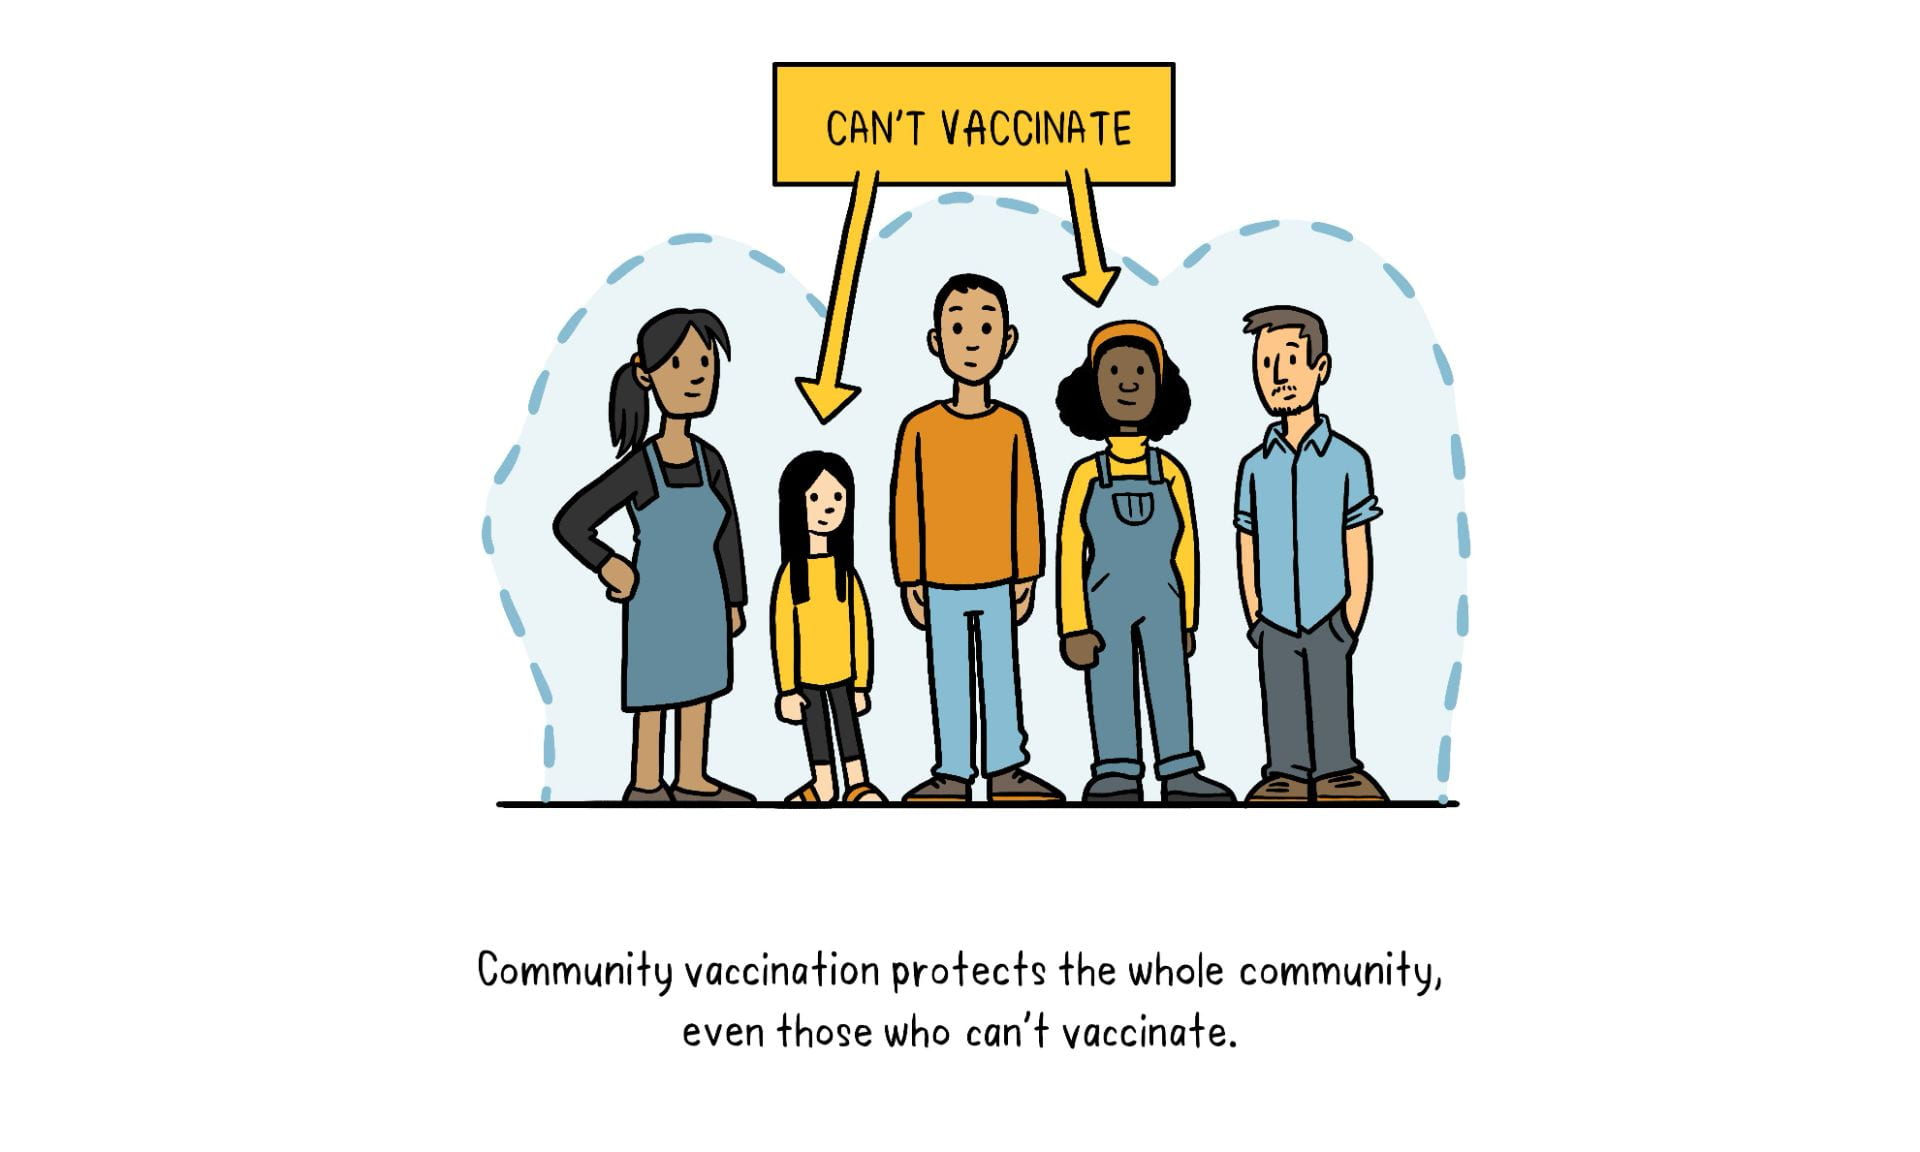 """There is a group of 5 people in a horizontal line by one another and the second and fourth person have a sign over them that says """"Can't Vaccinate."""""""